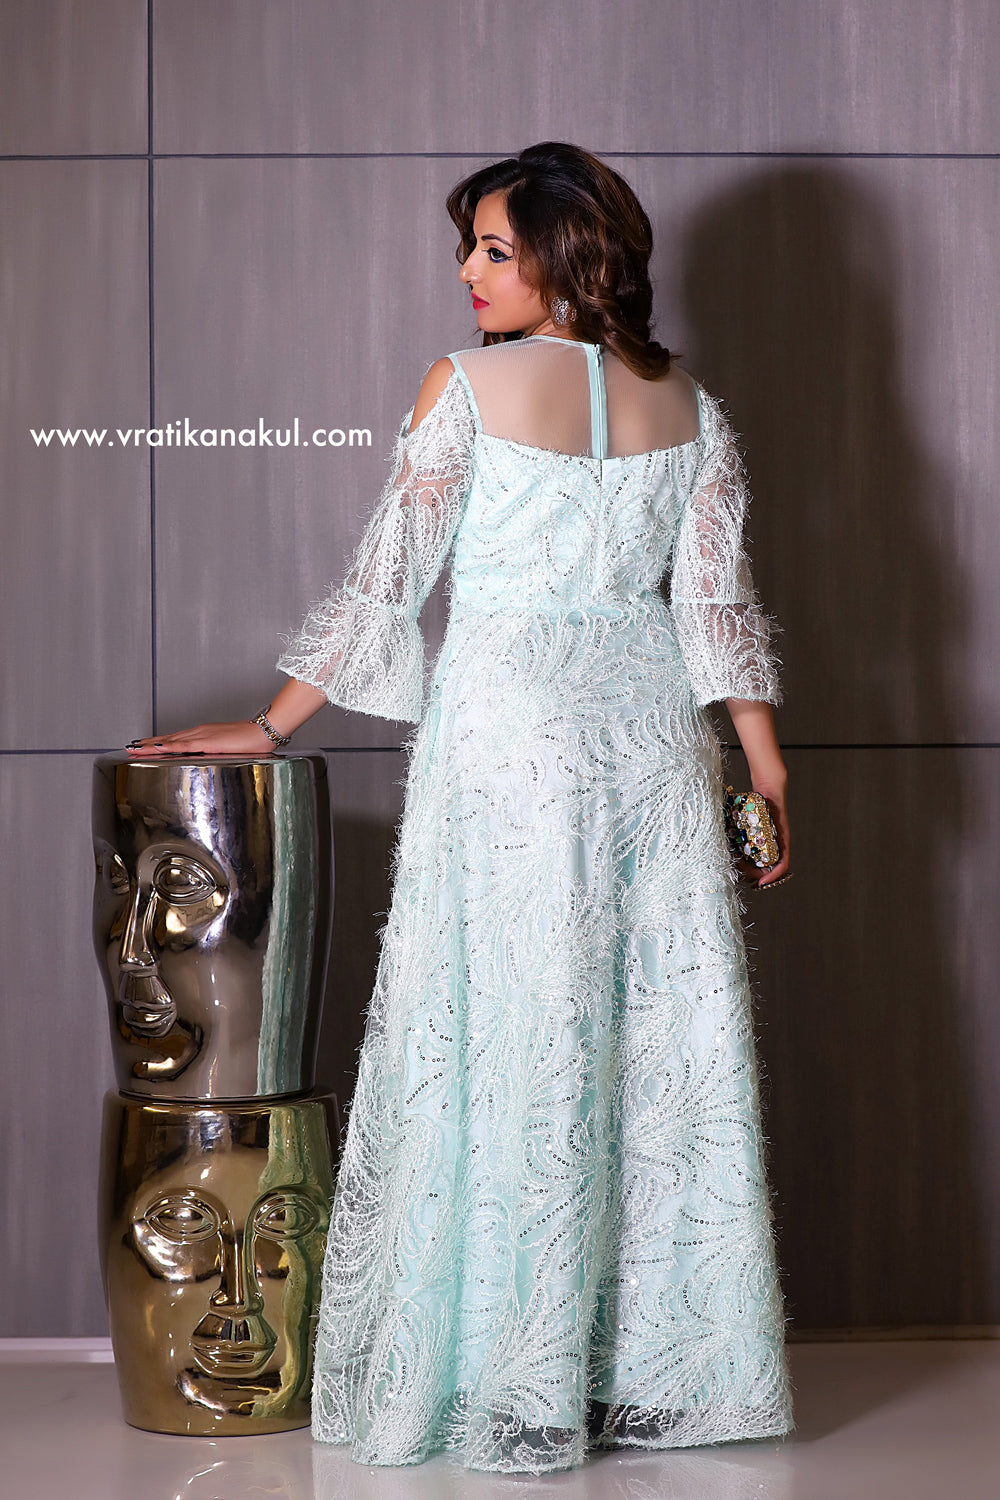 Feather & Sparkle Evening Gown - The Dream Edition - Indian - vratikanakul.com